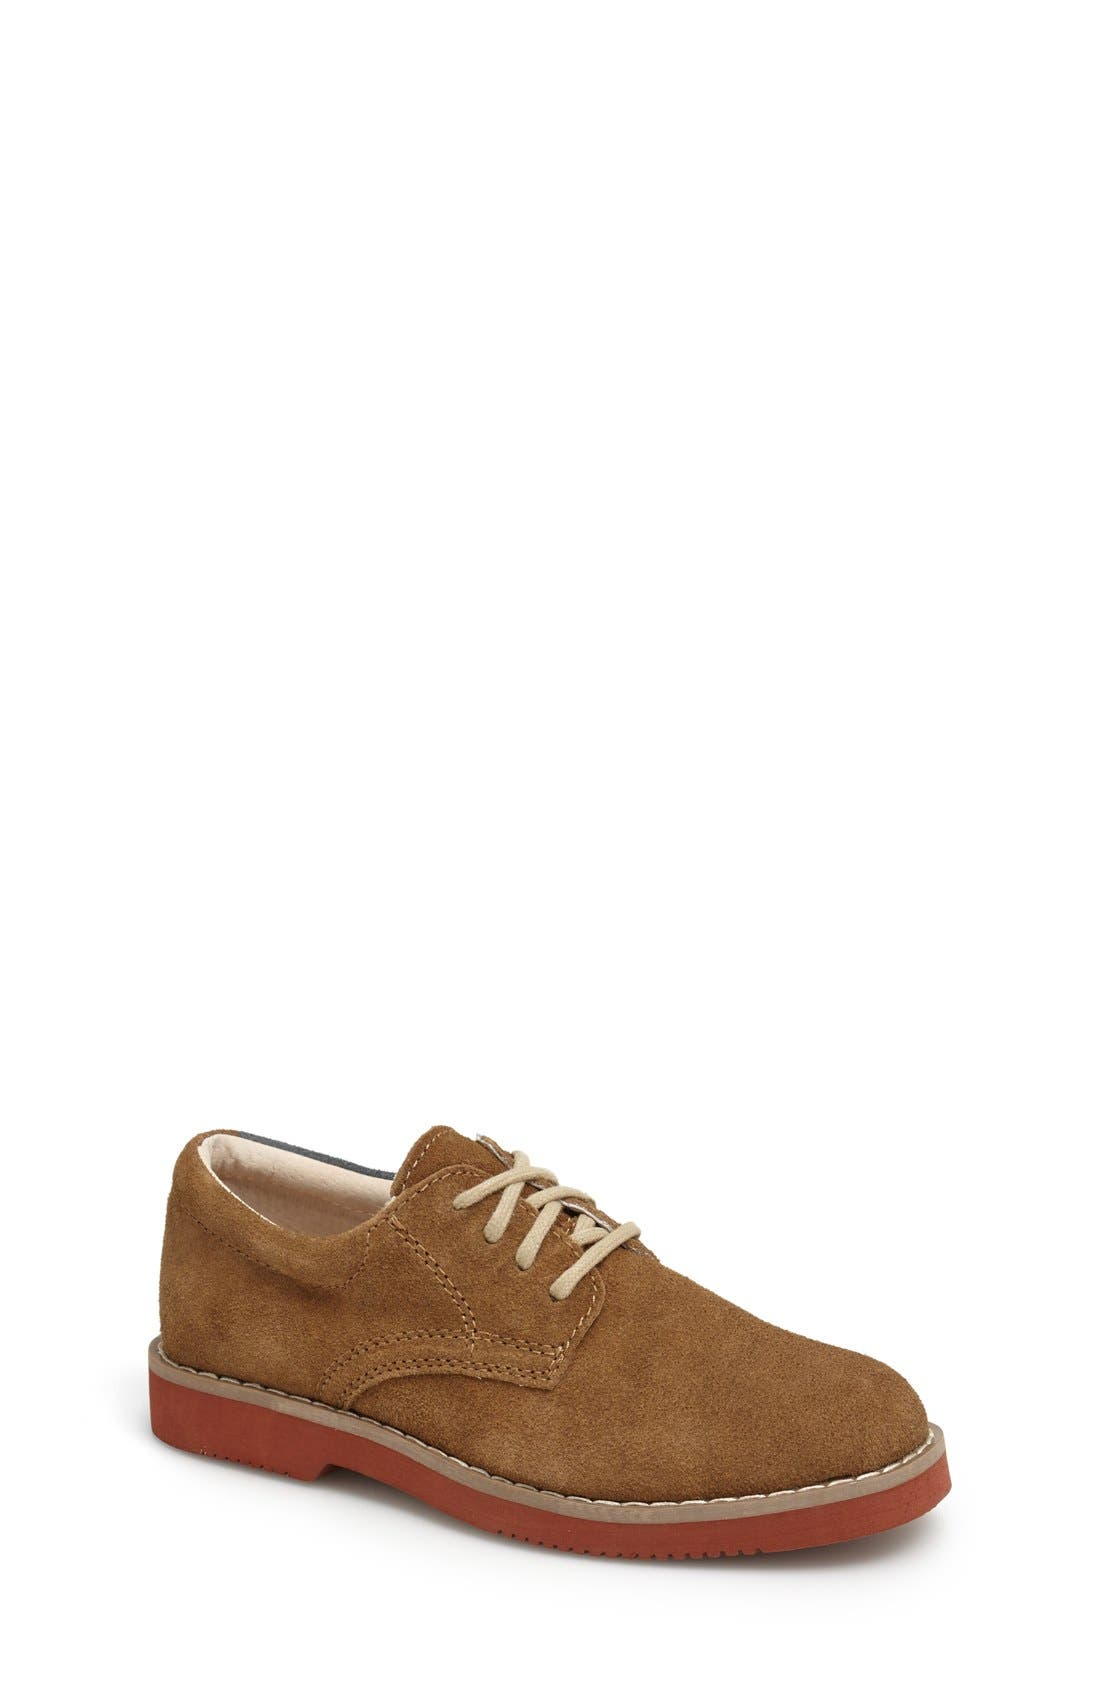 Main Image - Tucker + Tate by Nordstrom 'Cameron' Oxford (Walker, Toddler, Little Kid & Big Kid)